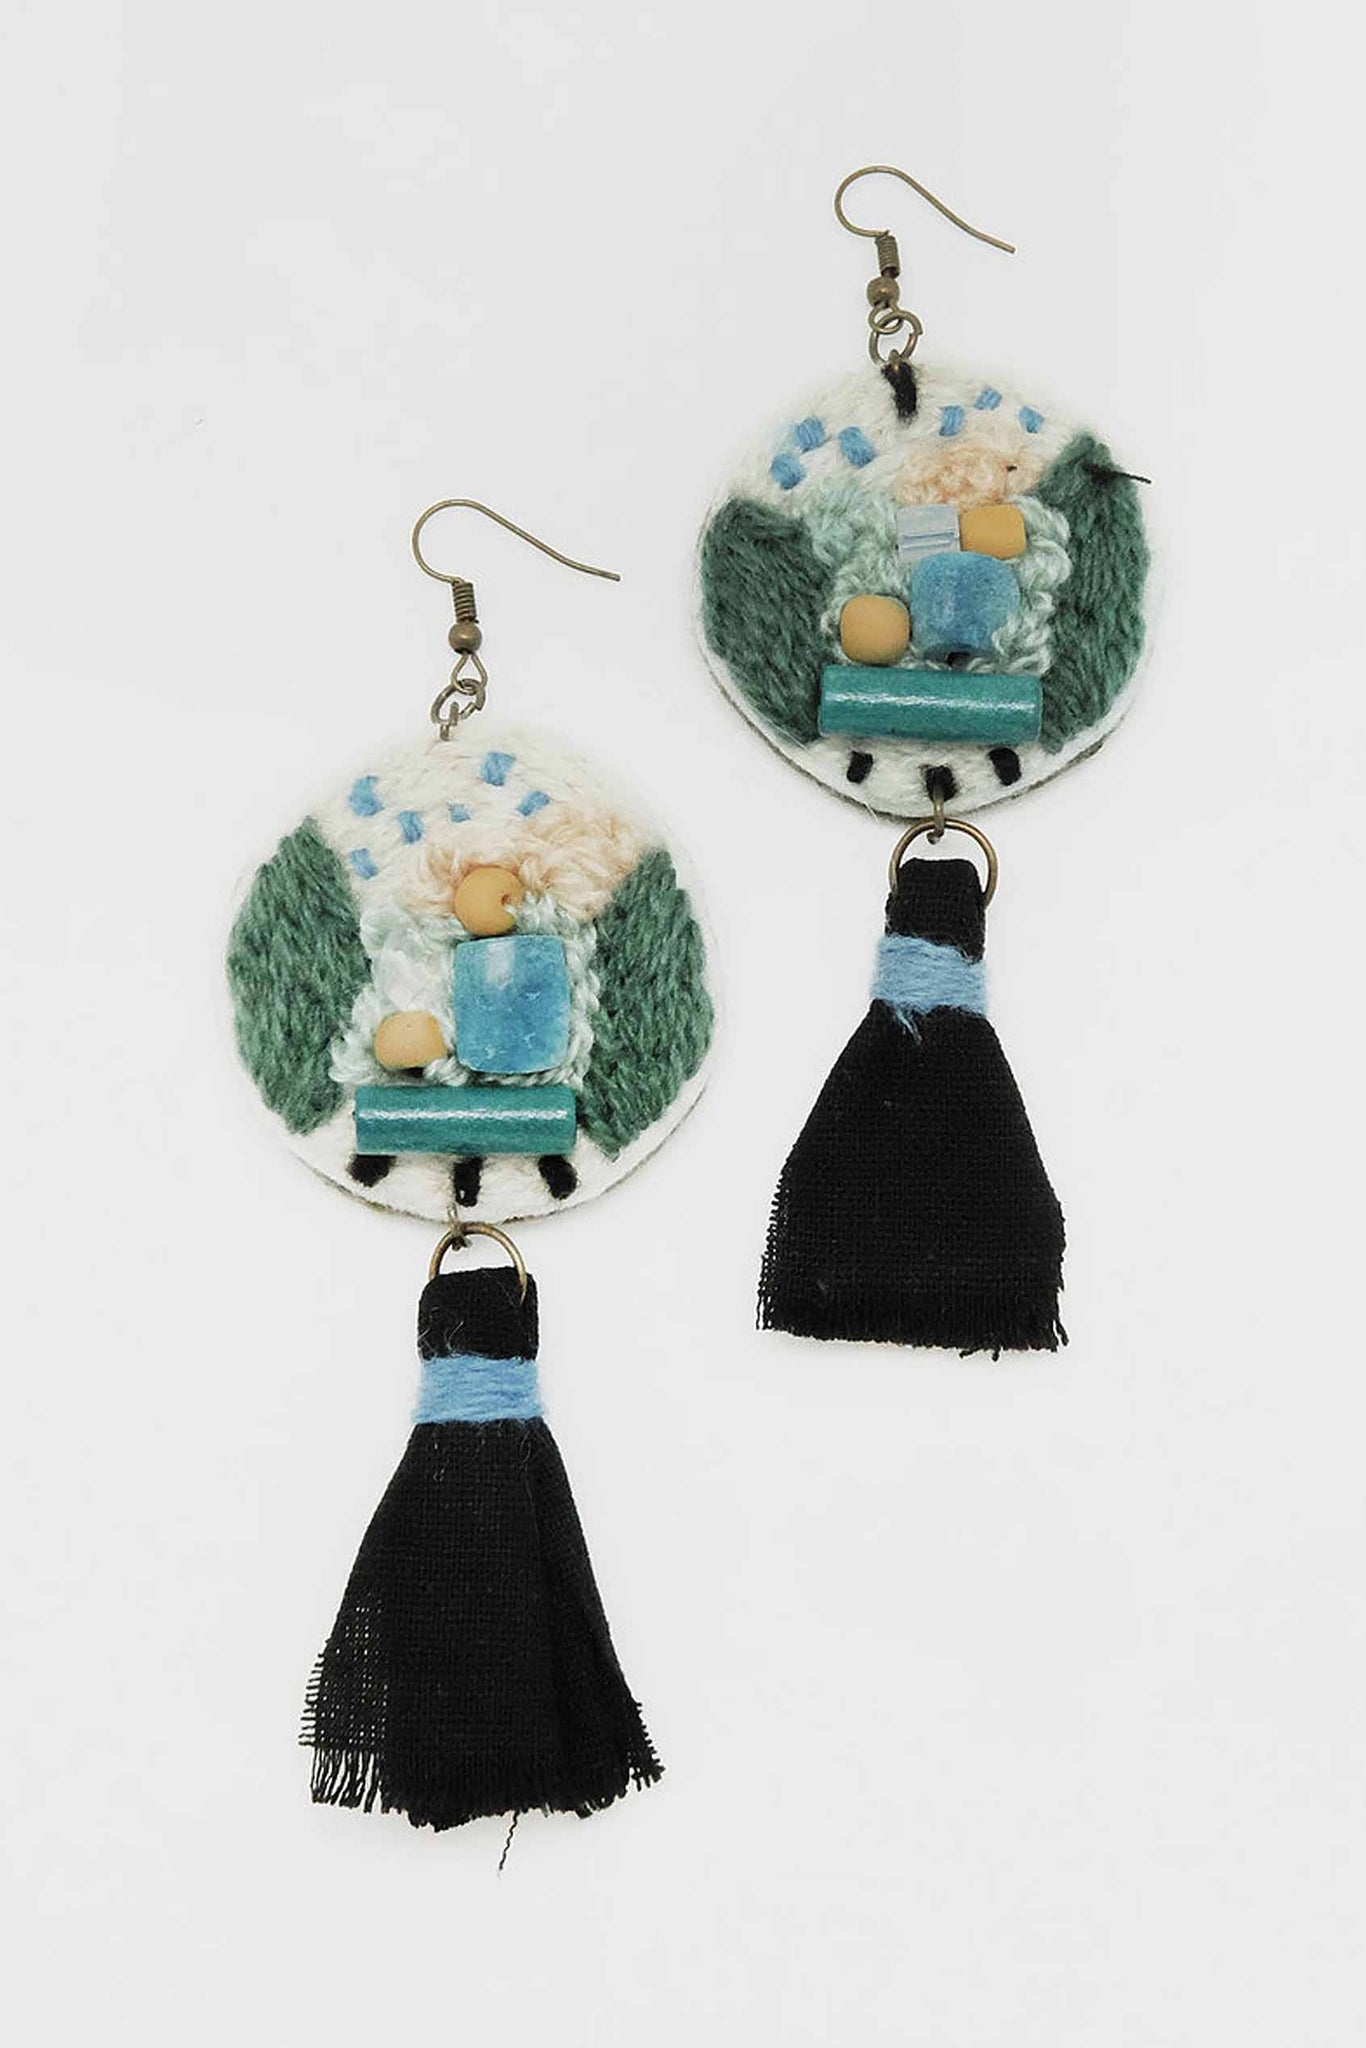 Round Totem in Green Earrings - Imaji Studio